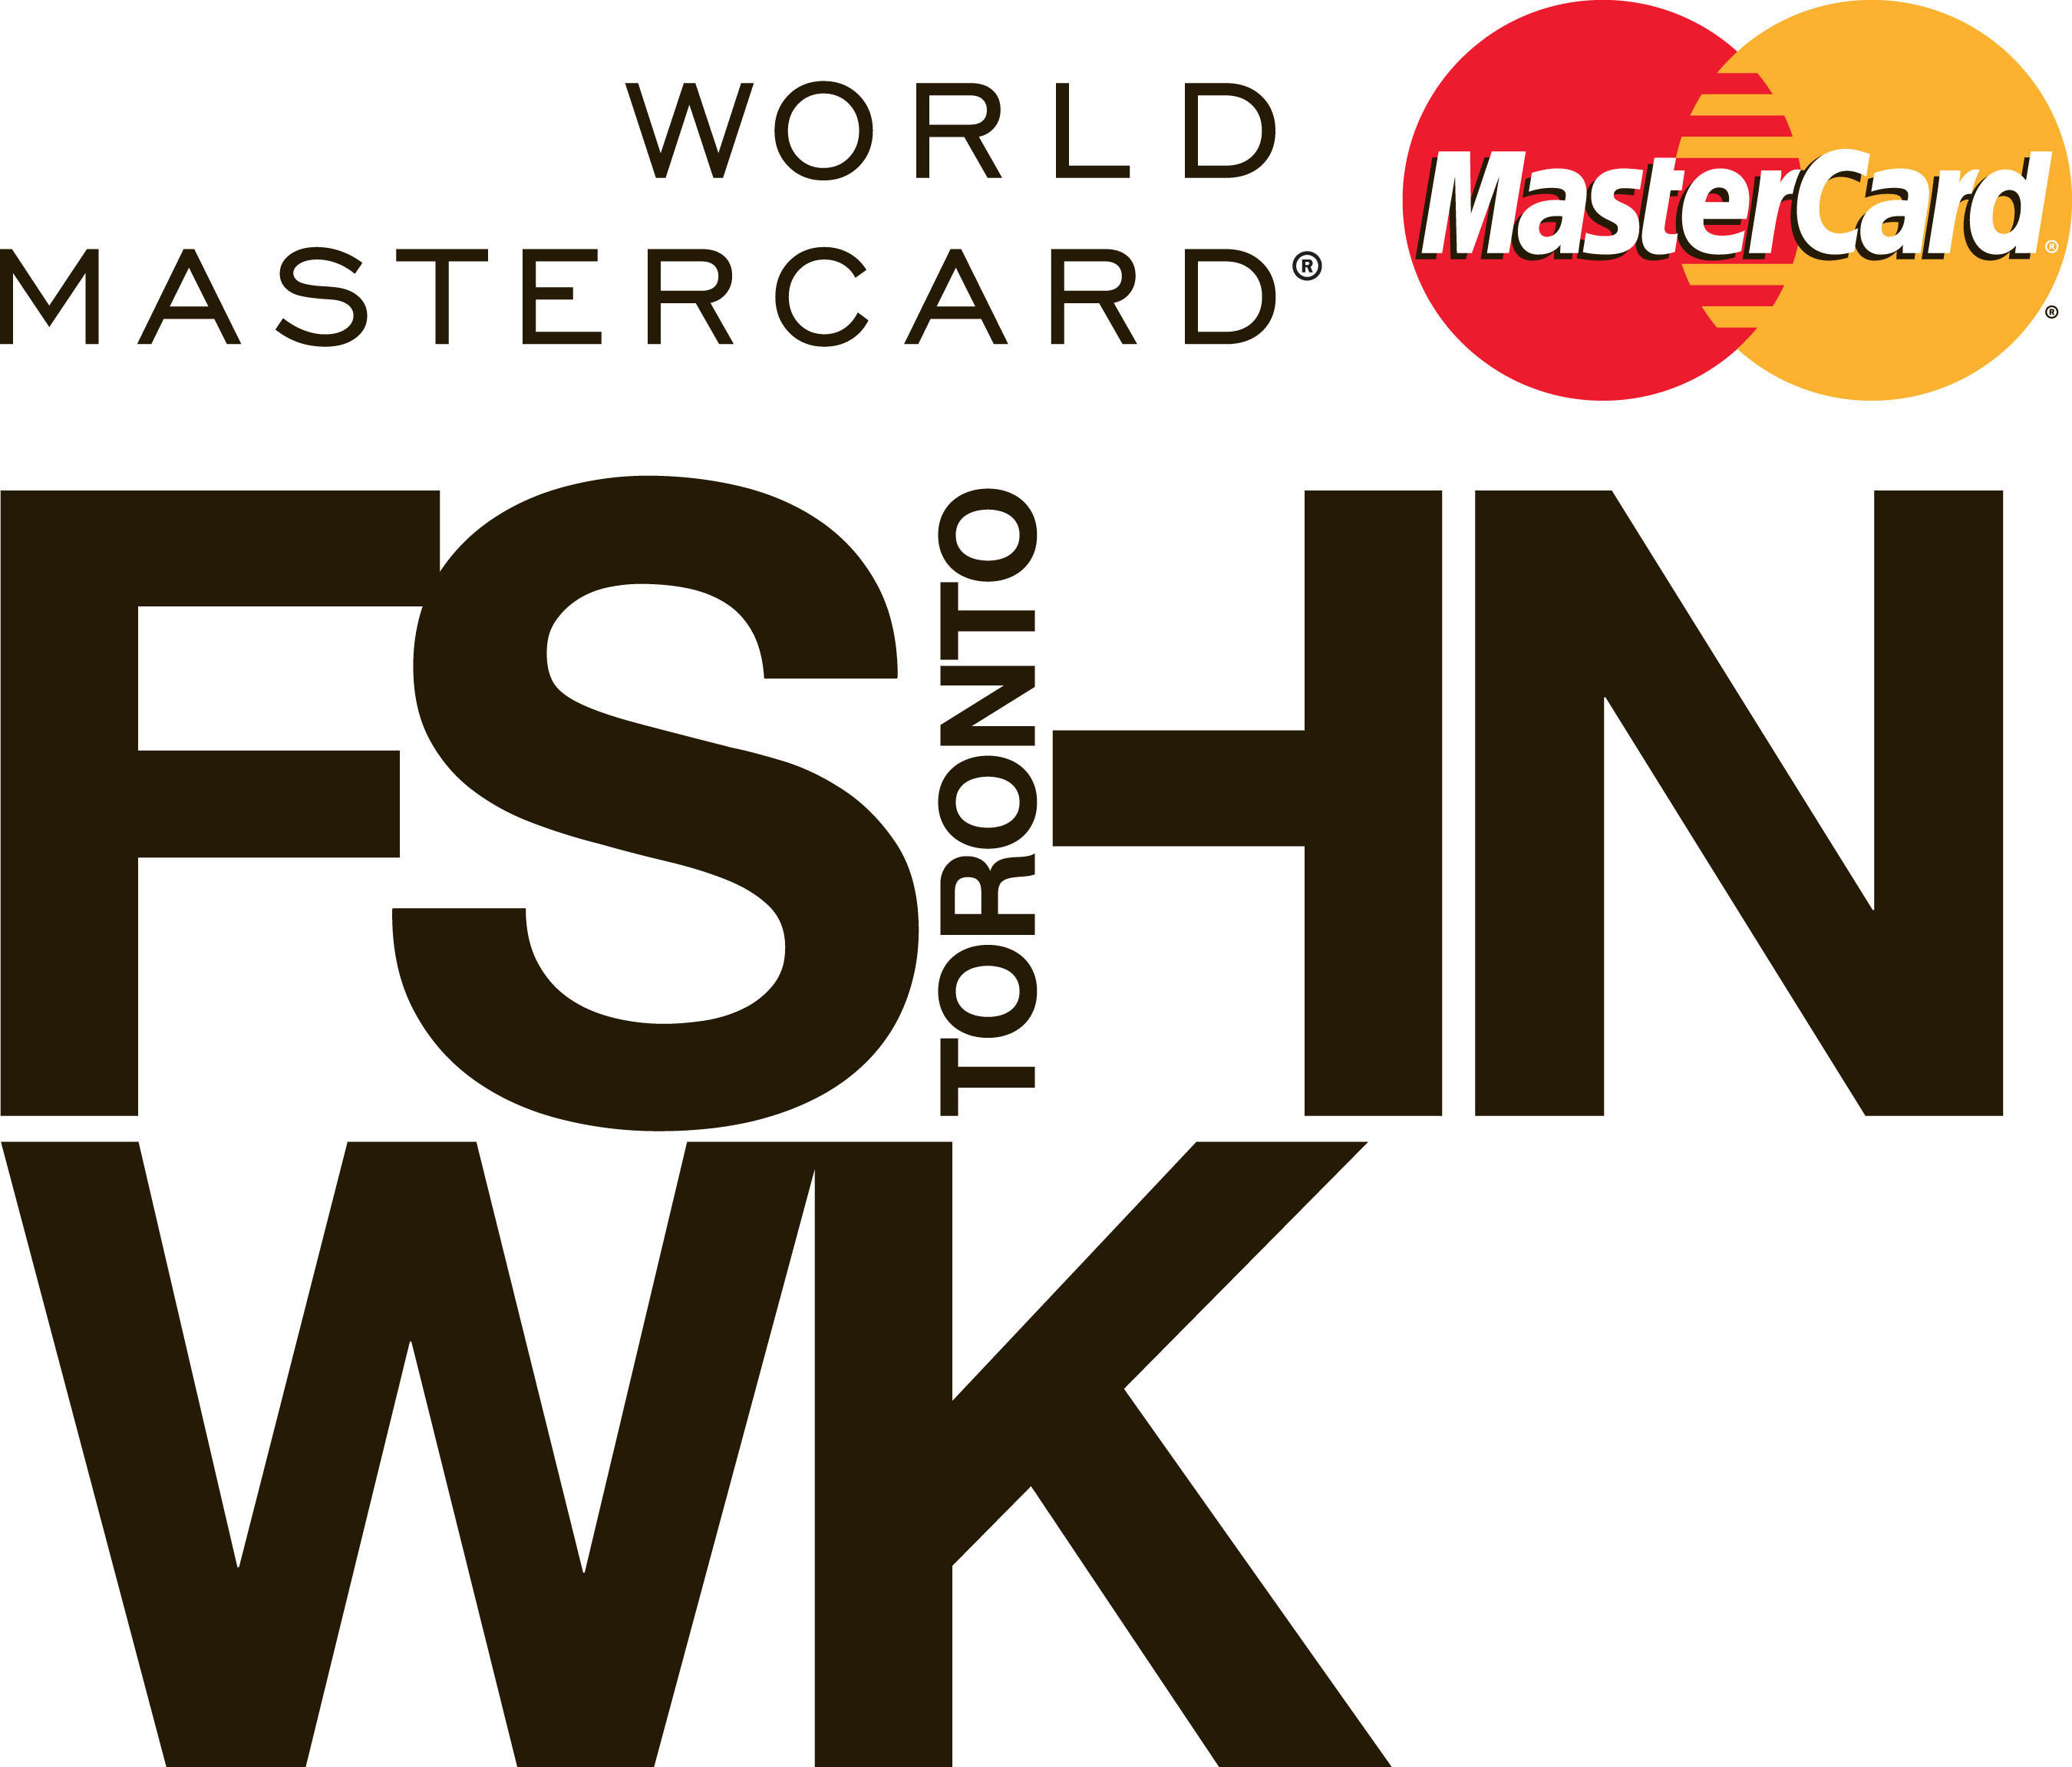 PANDORA to Sponsor World MasterCard Fashion Week